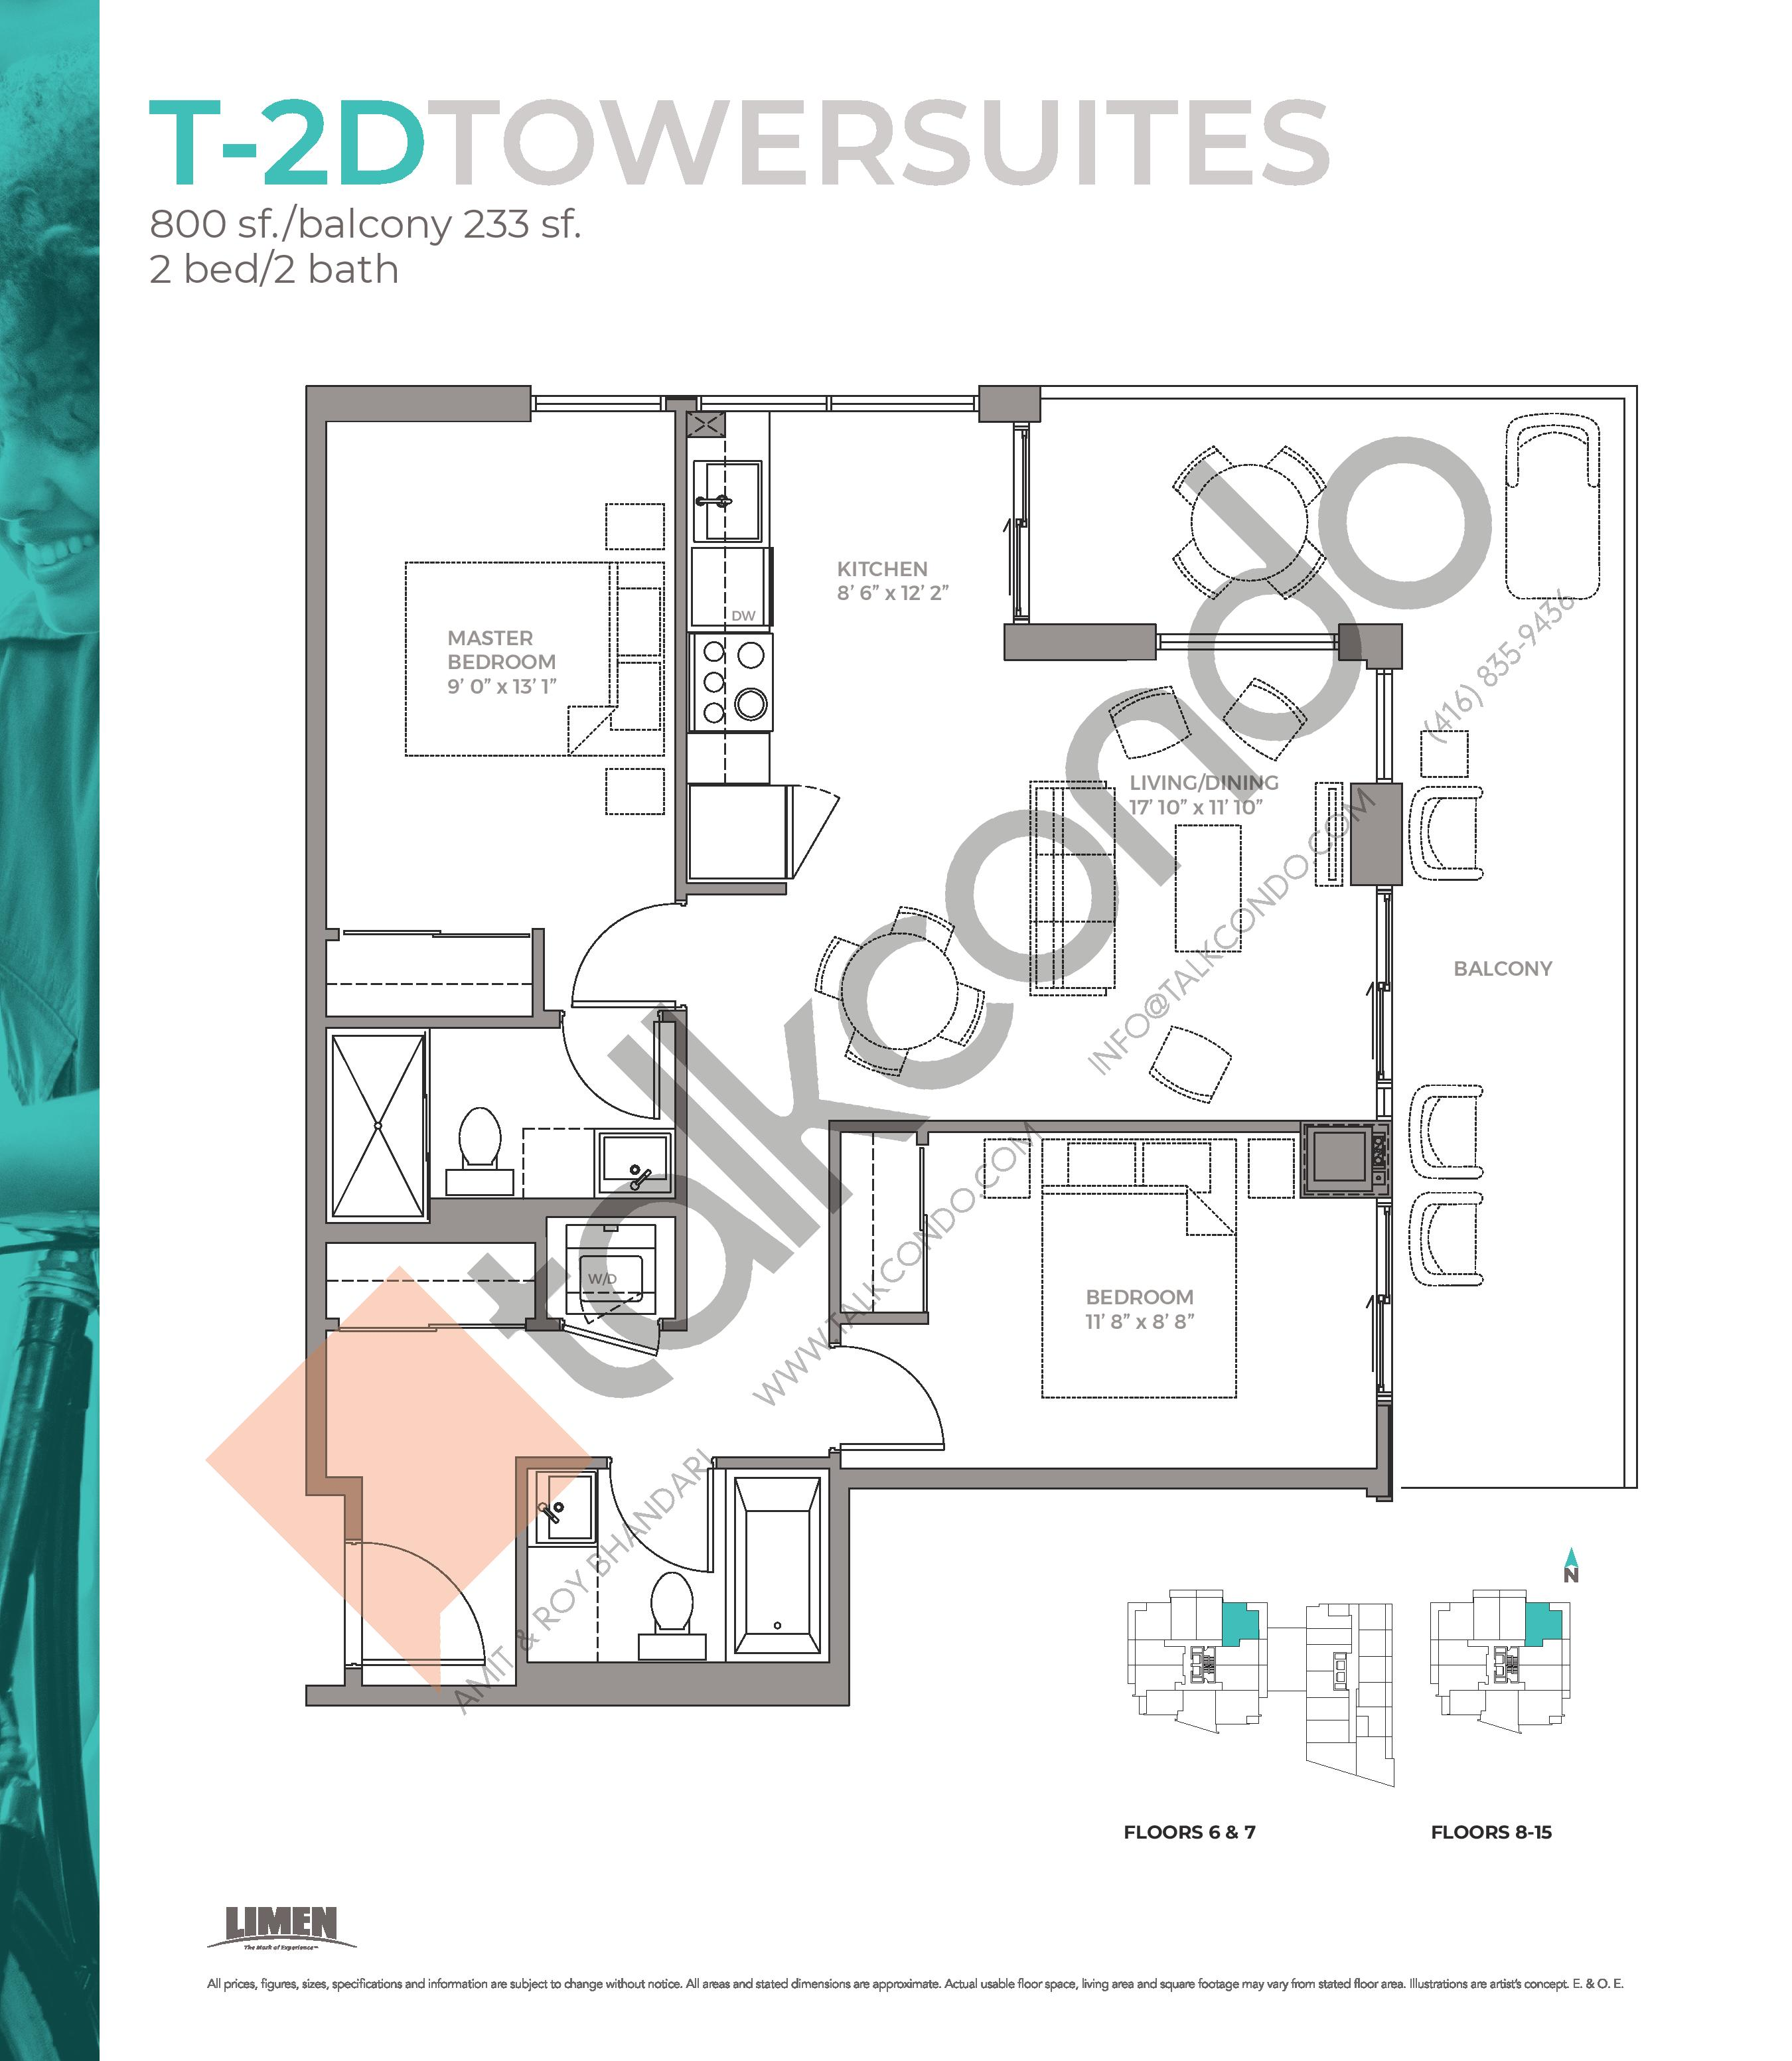 T-2D Towersuites Floor Plan at East Junction Condos - 800 sq.ft